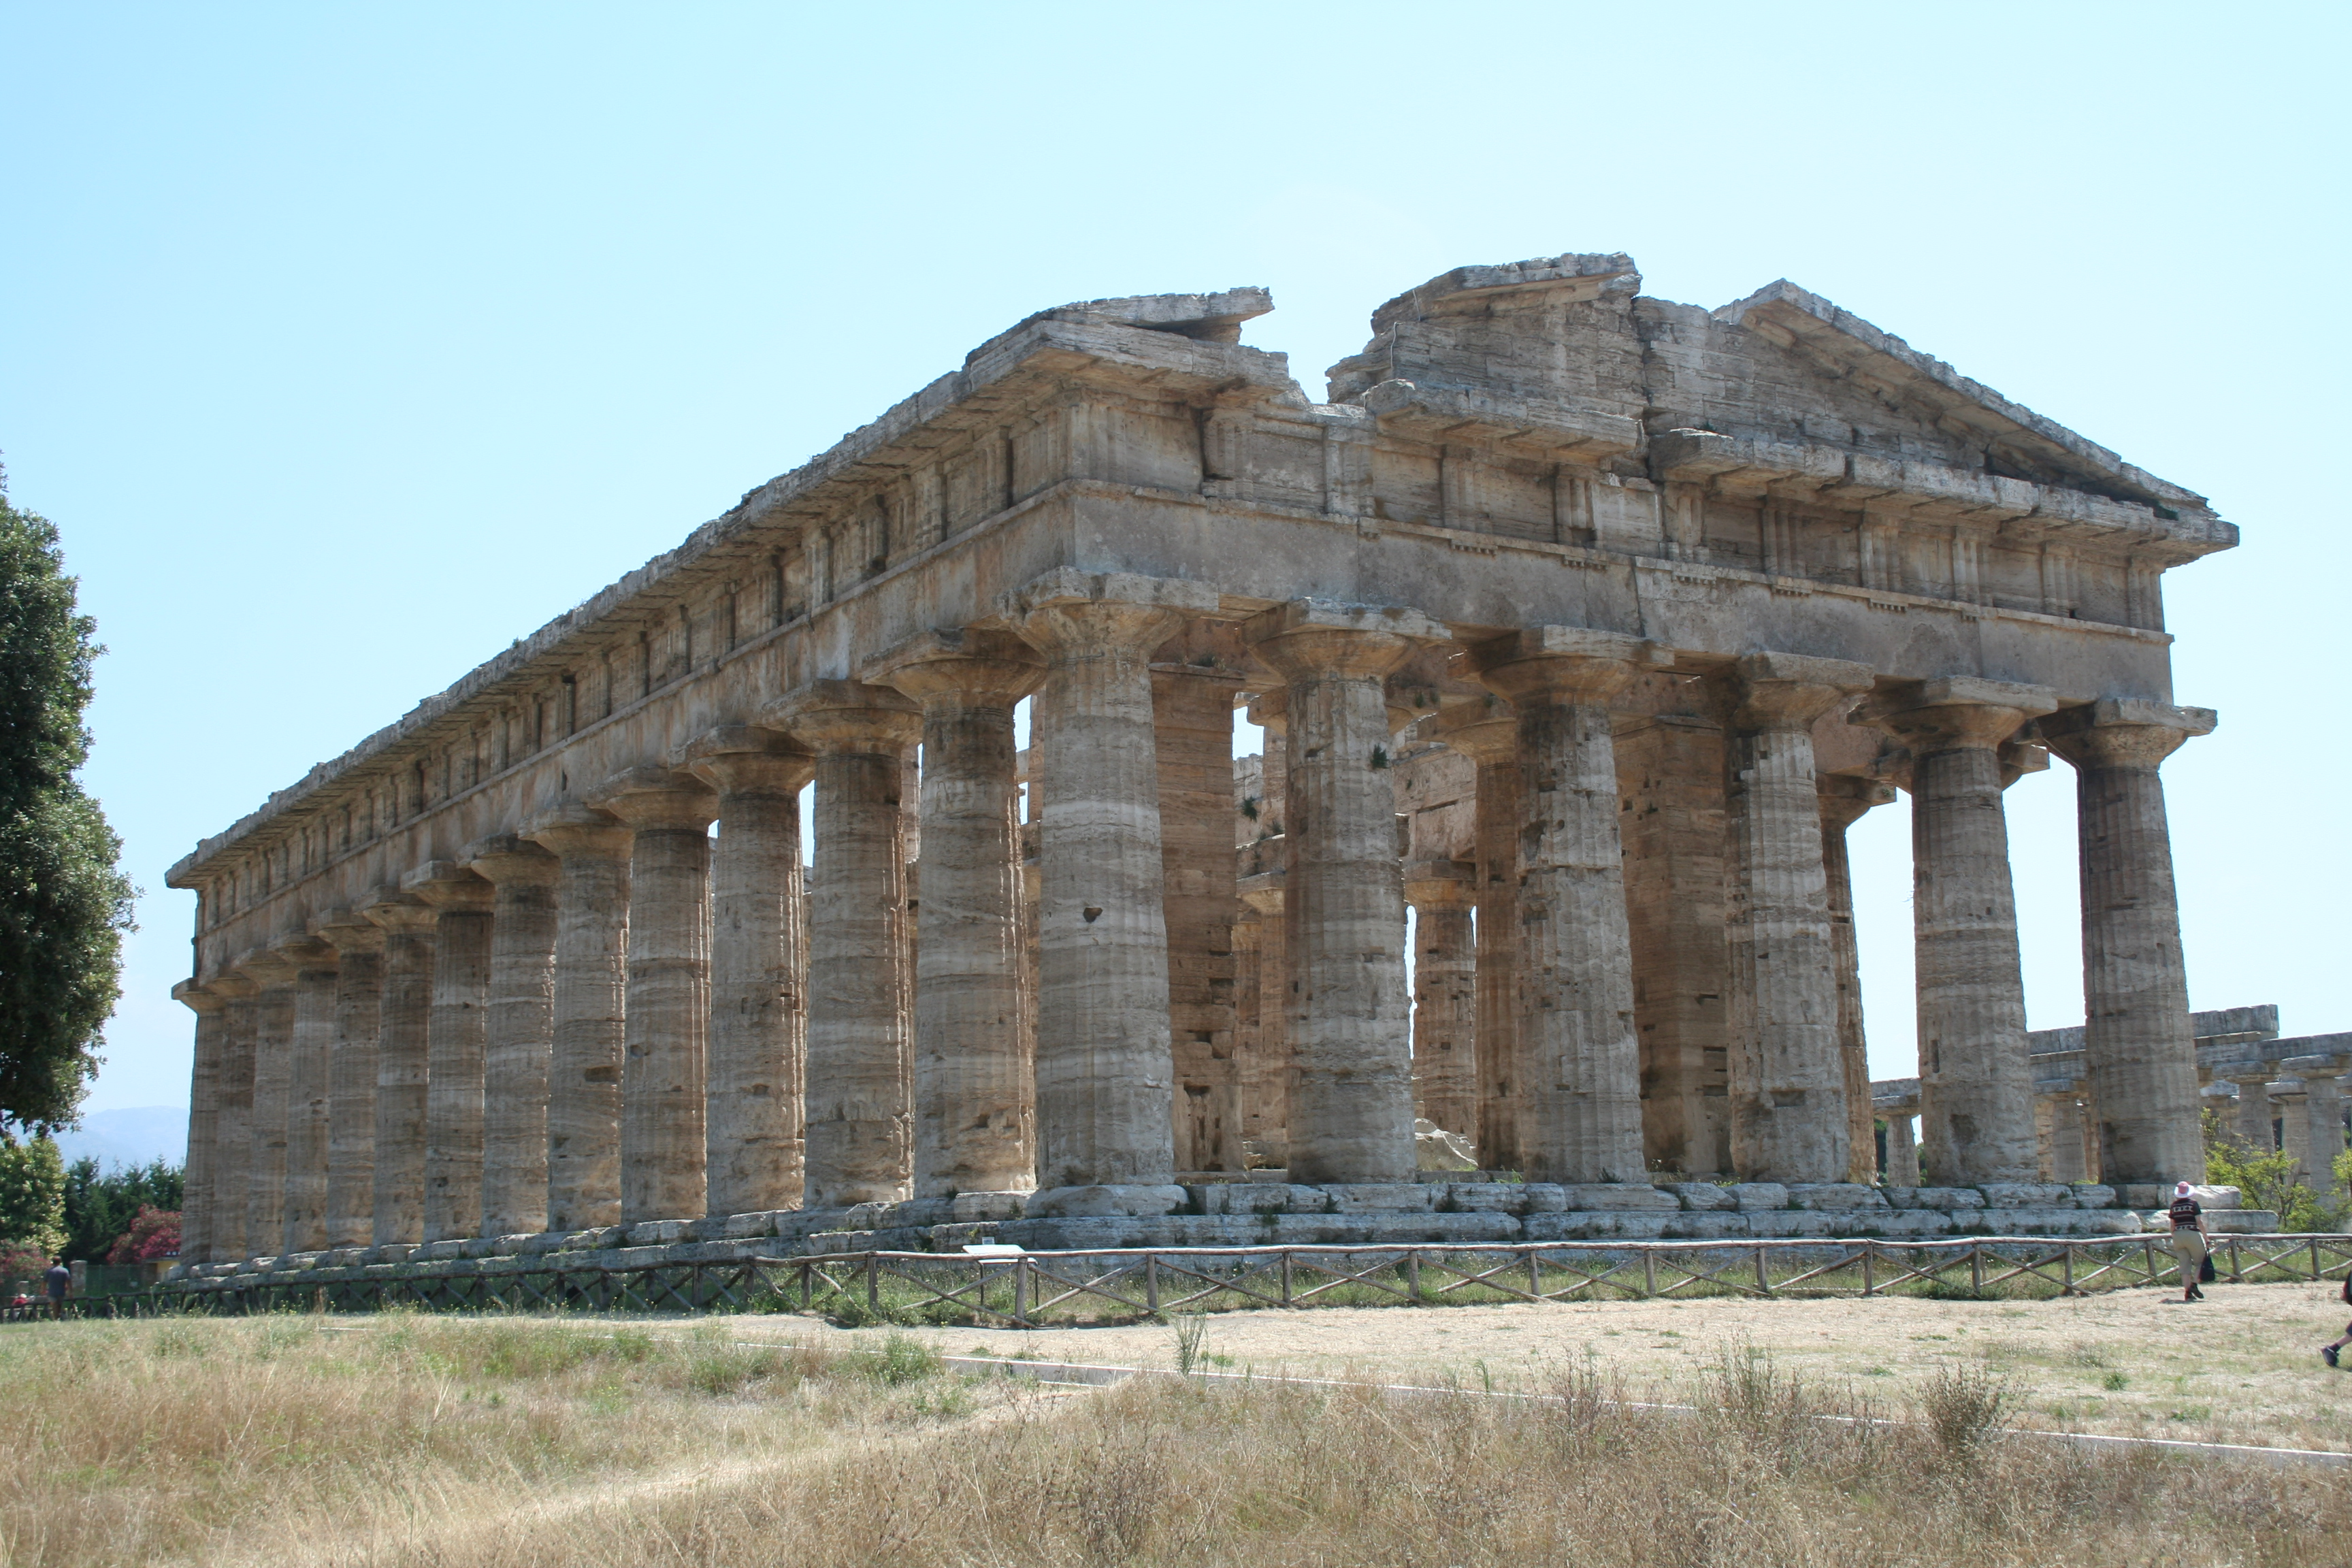 File:Temple of Poseidon - Paestum - Italy.JPG